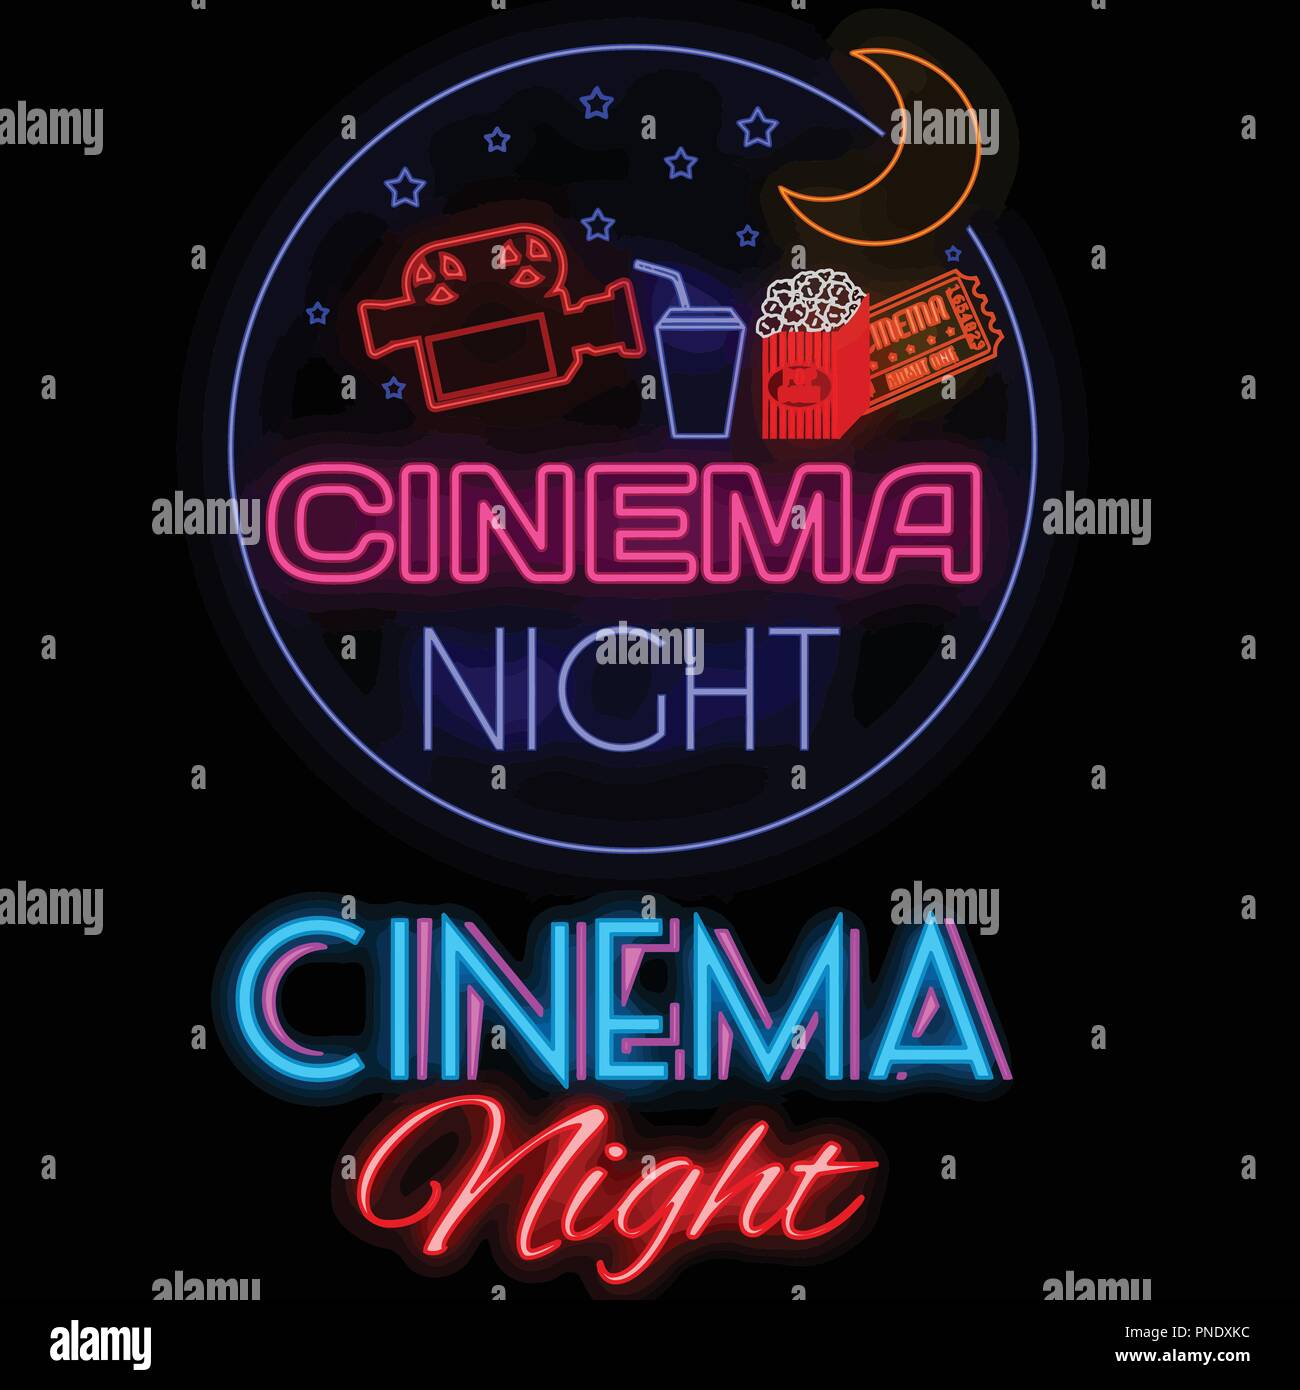 Cinema night glowing neon sign on black background, vector illustration - Stock Vector